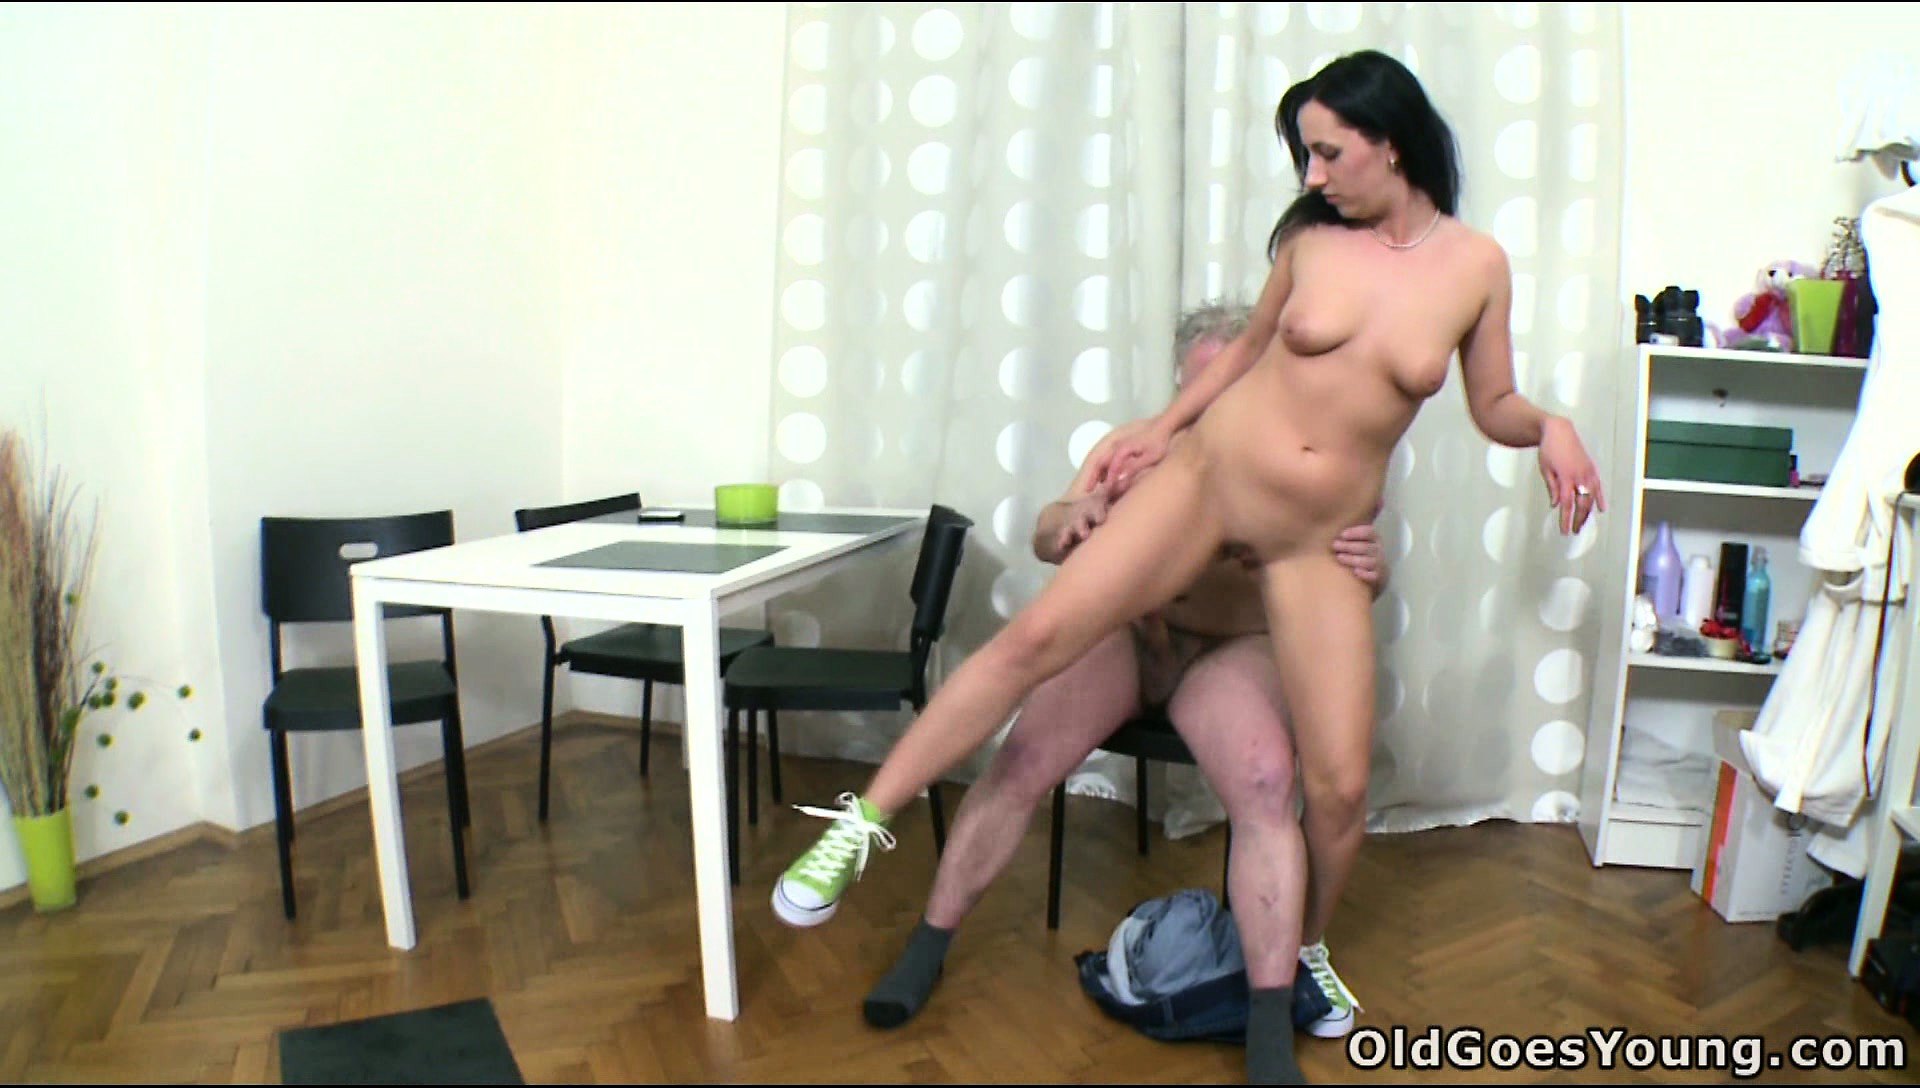 Thanks! doubt free porn videos young and old free pussy